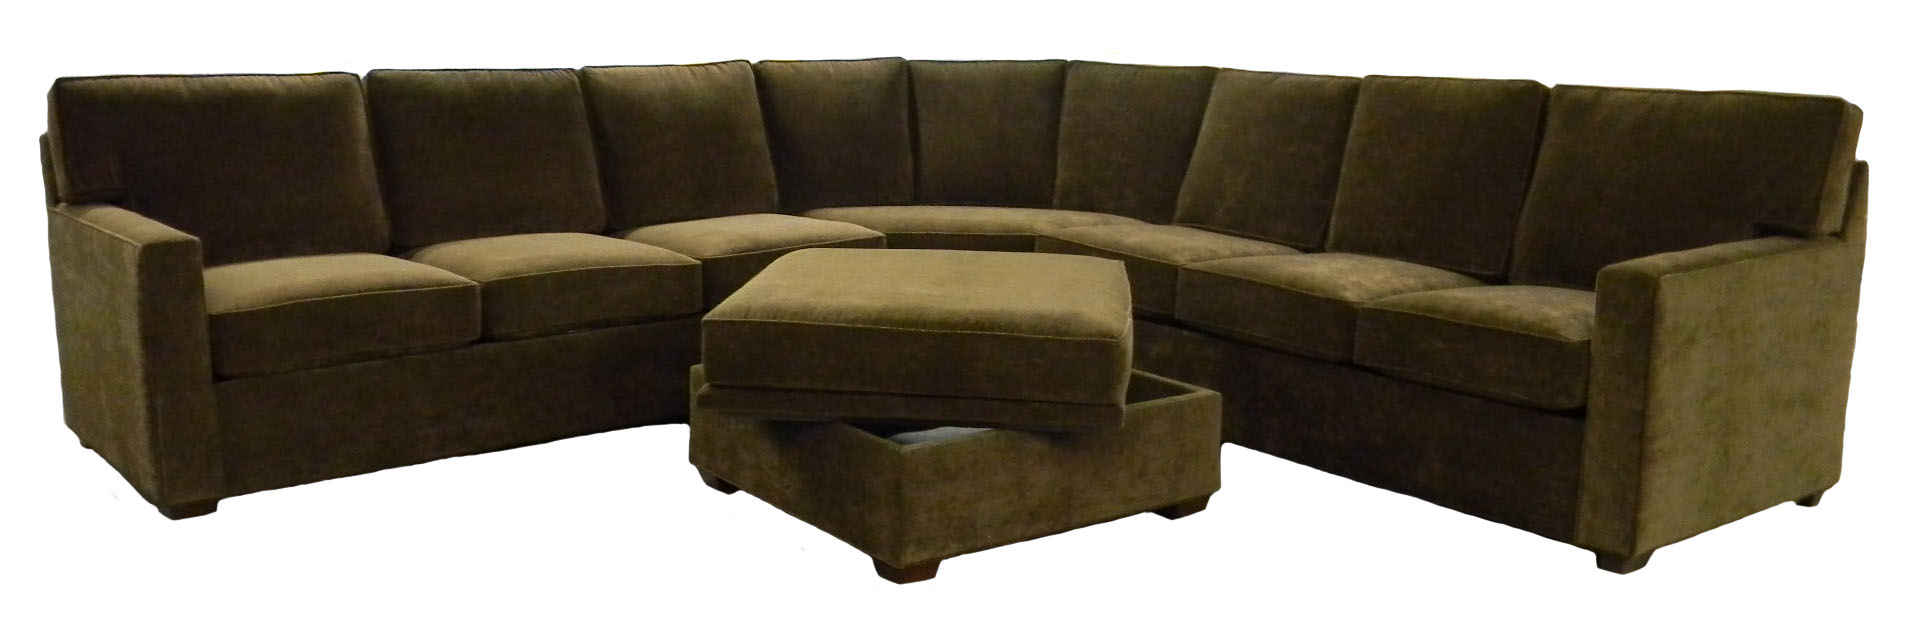 large sectional sofas deep seated sofa couches for cheap